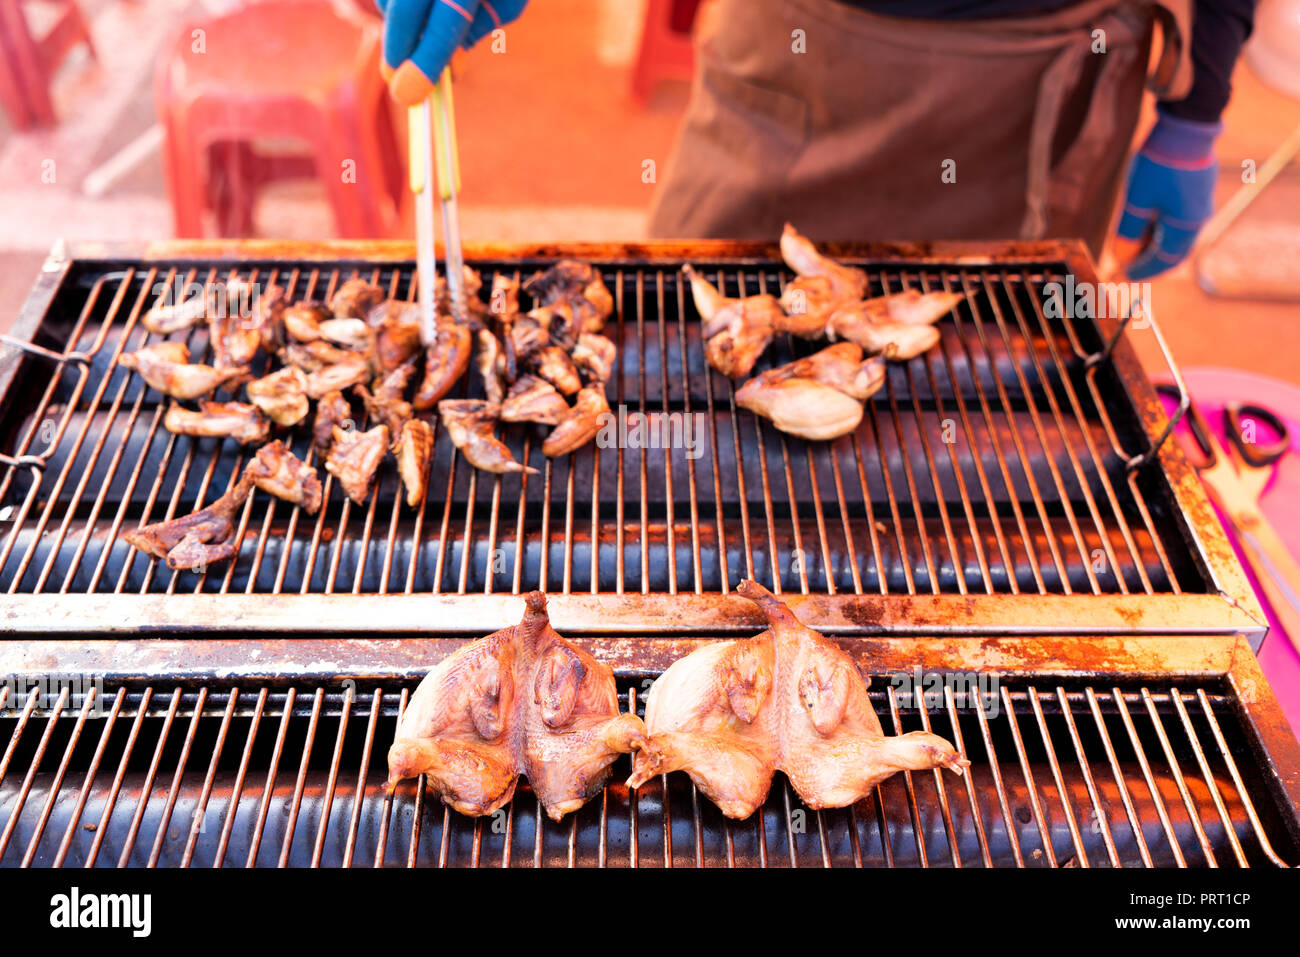 The sparrow meat is being cooked,  Gyeonggi-do Province, South korea. - Stock Image